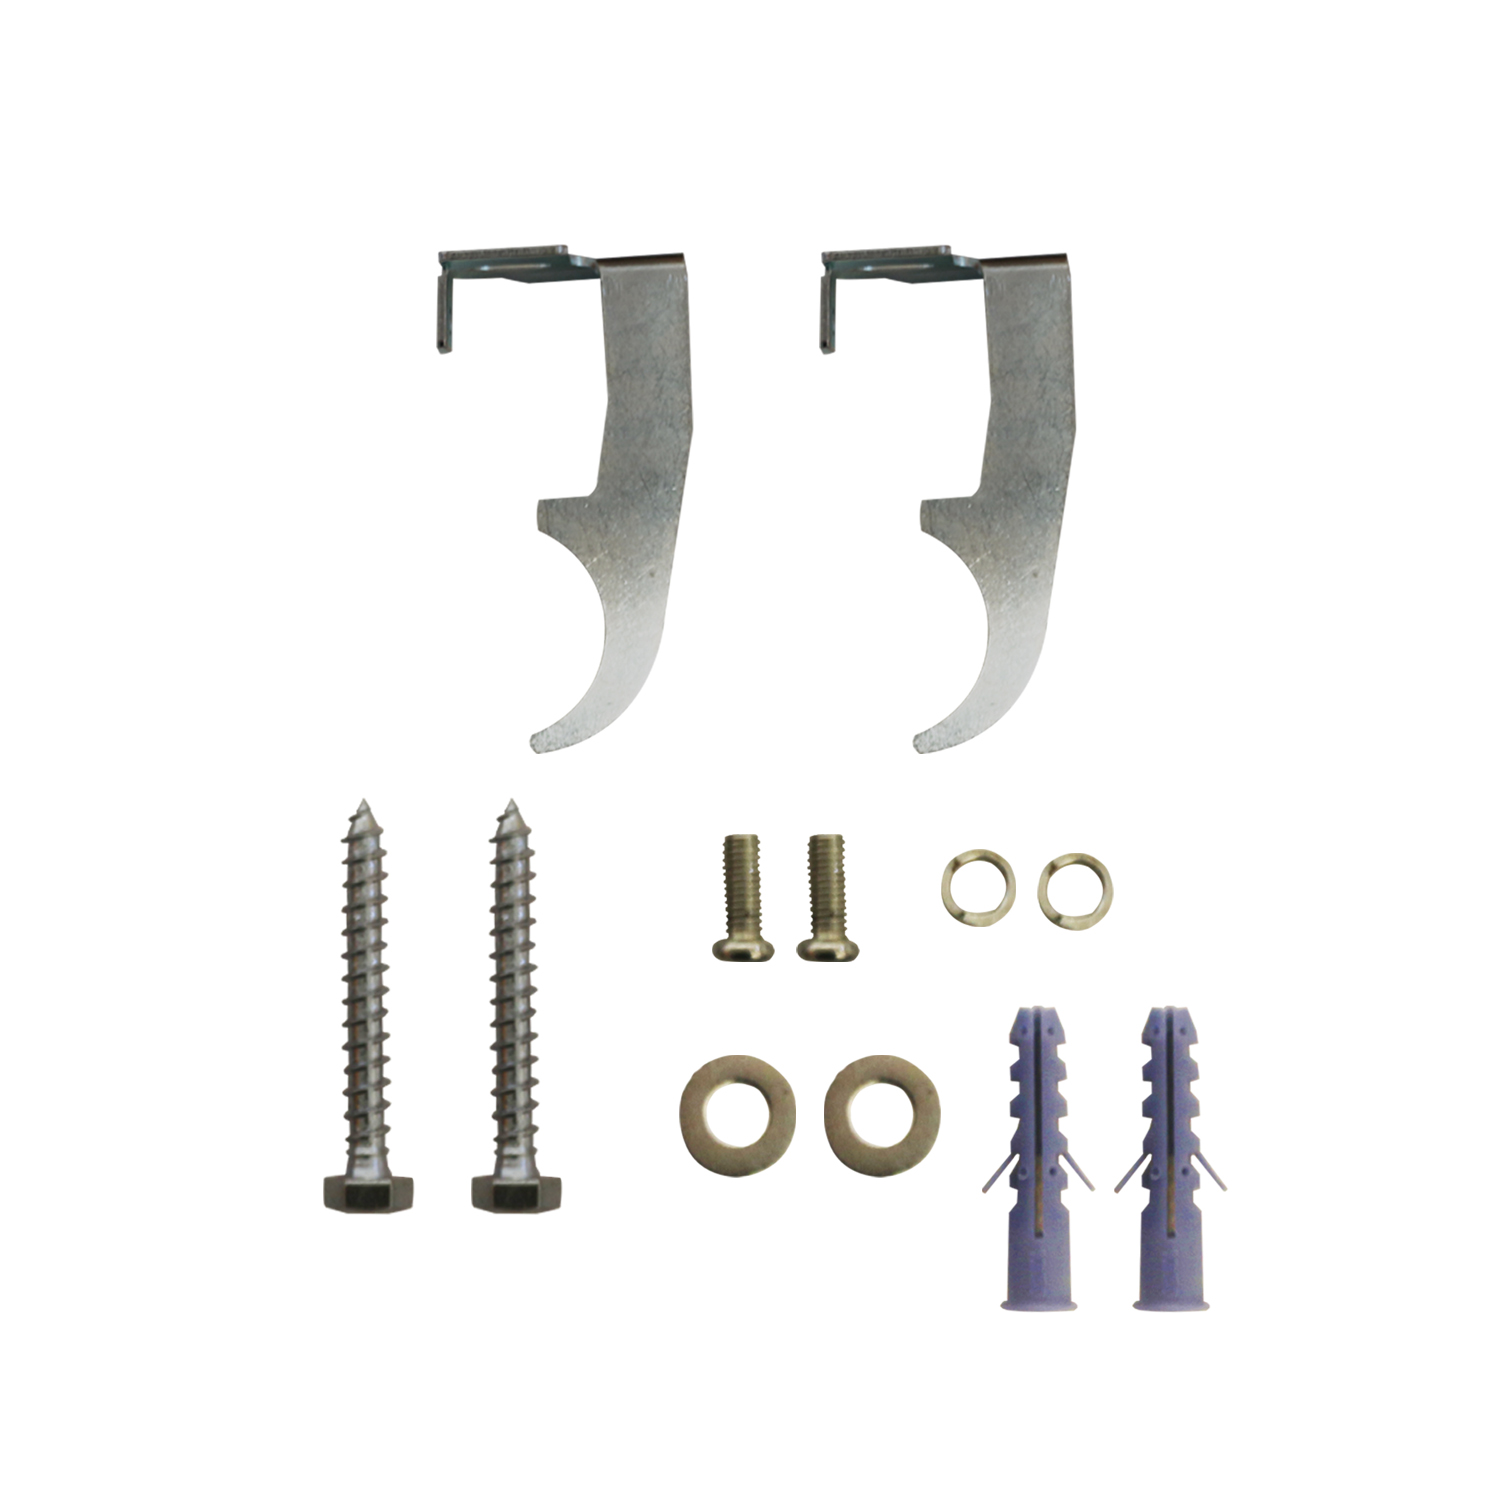 Aluminium Radiator Bracket UR9104, Radiator Mounting Brackets